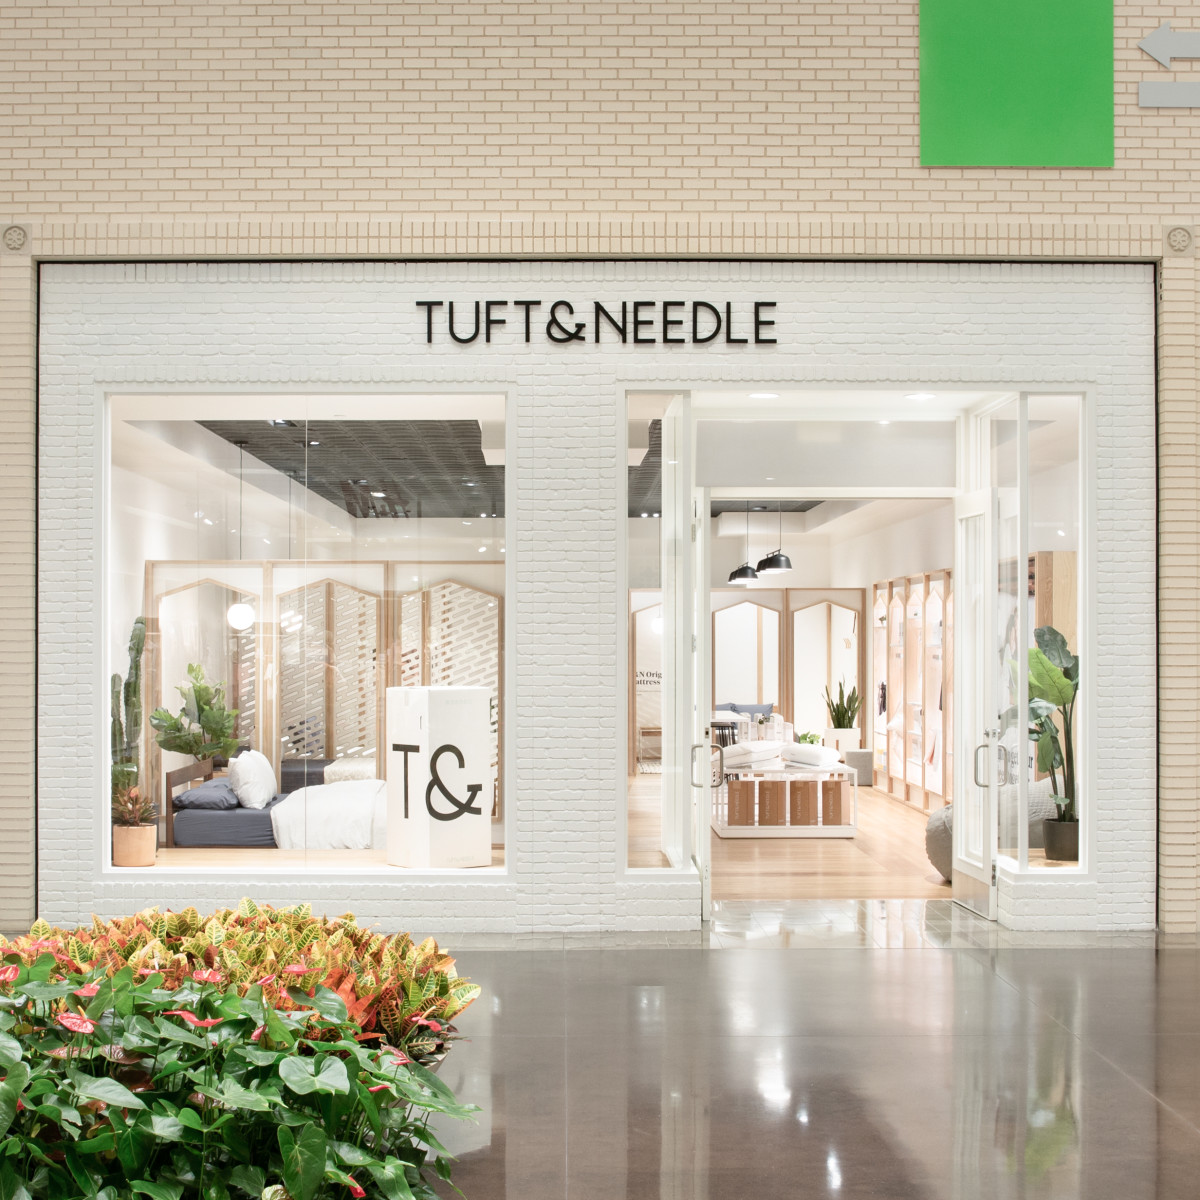 Tuft & Needle NorthPark Dallas storefront